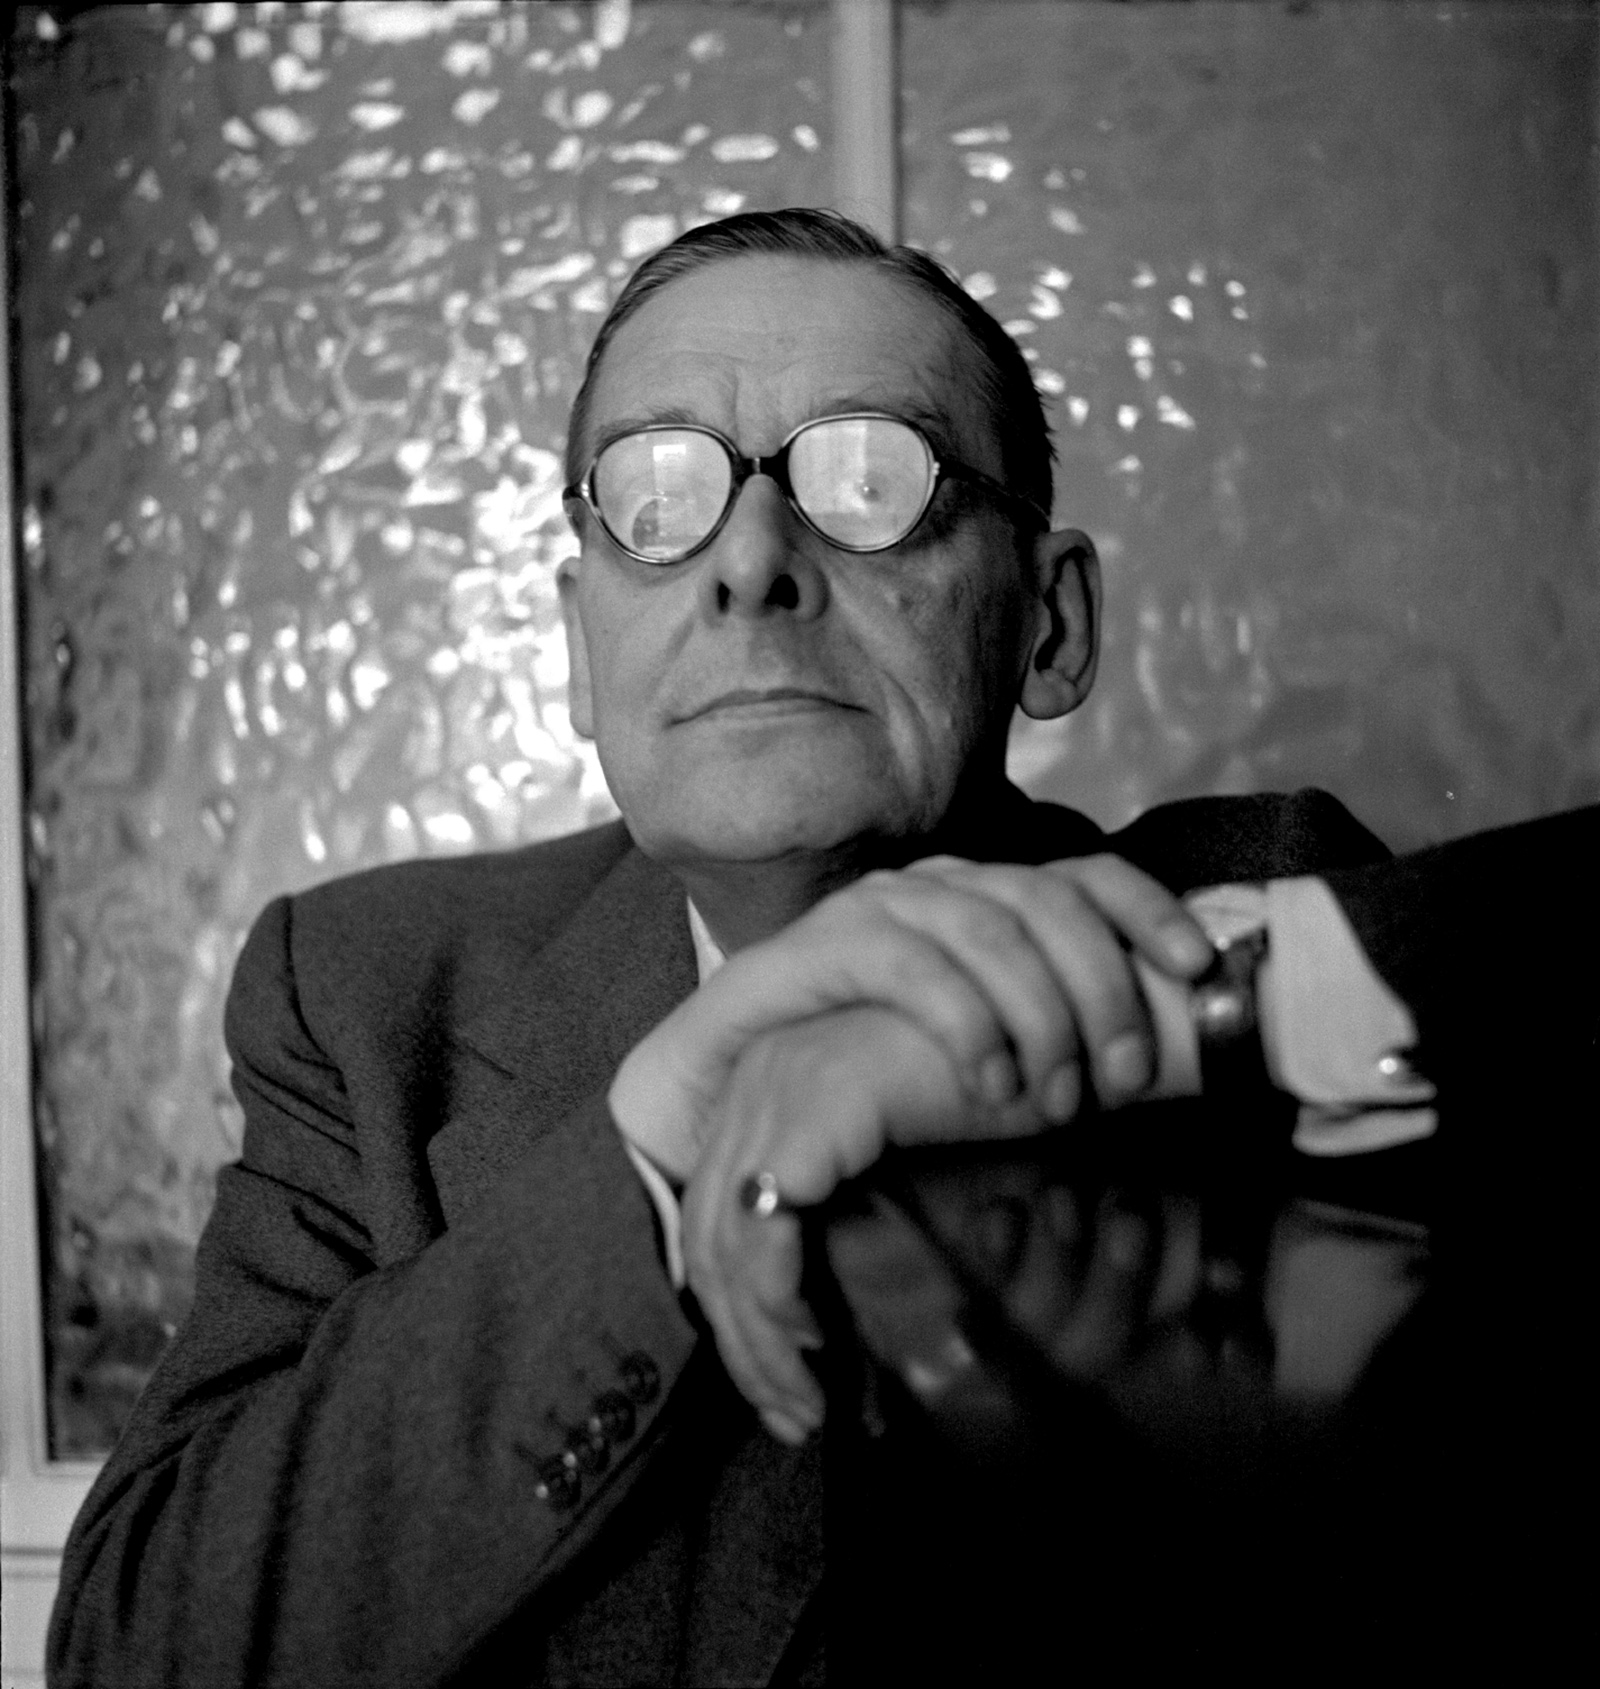 T. S. Eliot, 1956; photograph by Cecil Beaton from Mark Holborn's book Beaton: Photographs, just published by Abrams with an introduction by Annie Leibovitz